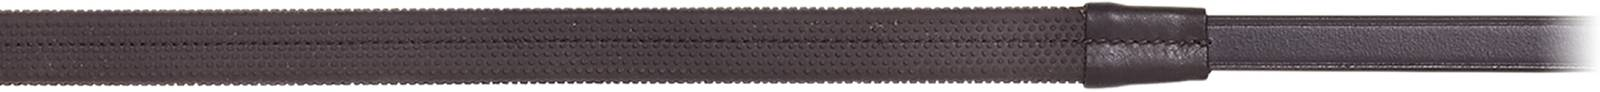 Camelot Rubber Covered Reins - Stops